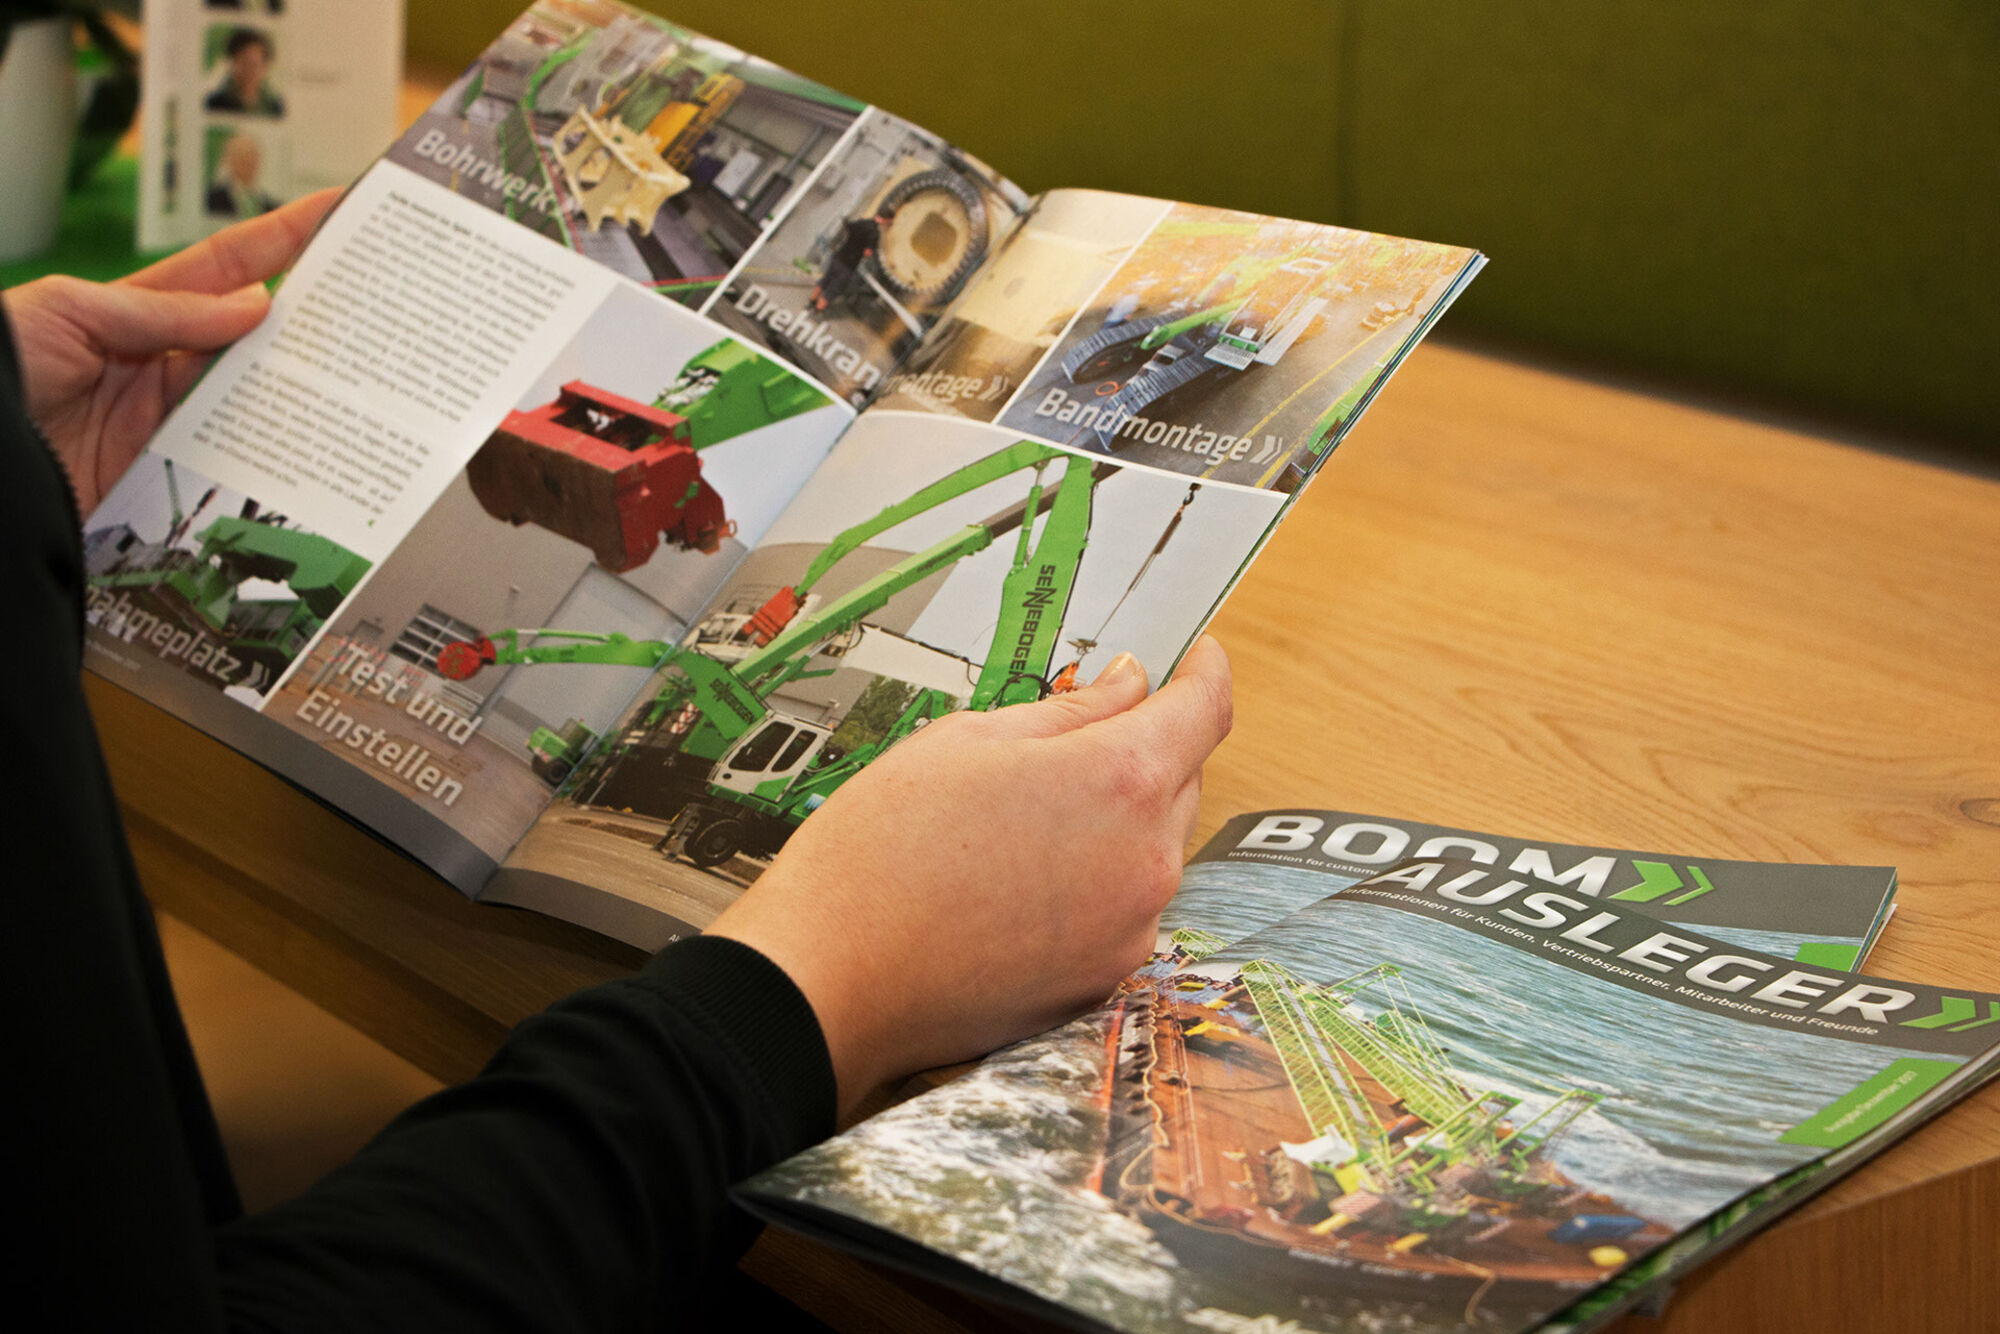 SENNEBOGEN customer magazine BOOM